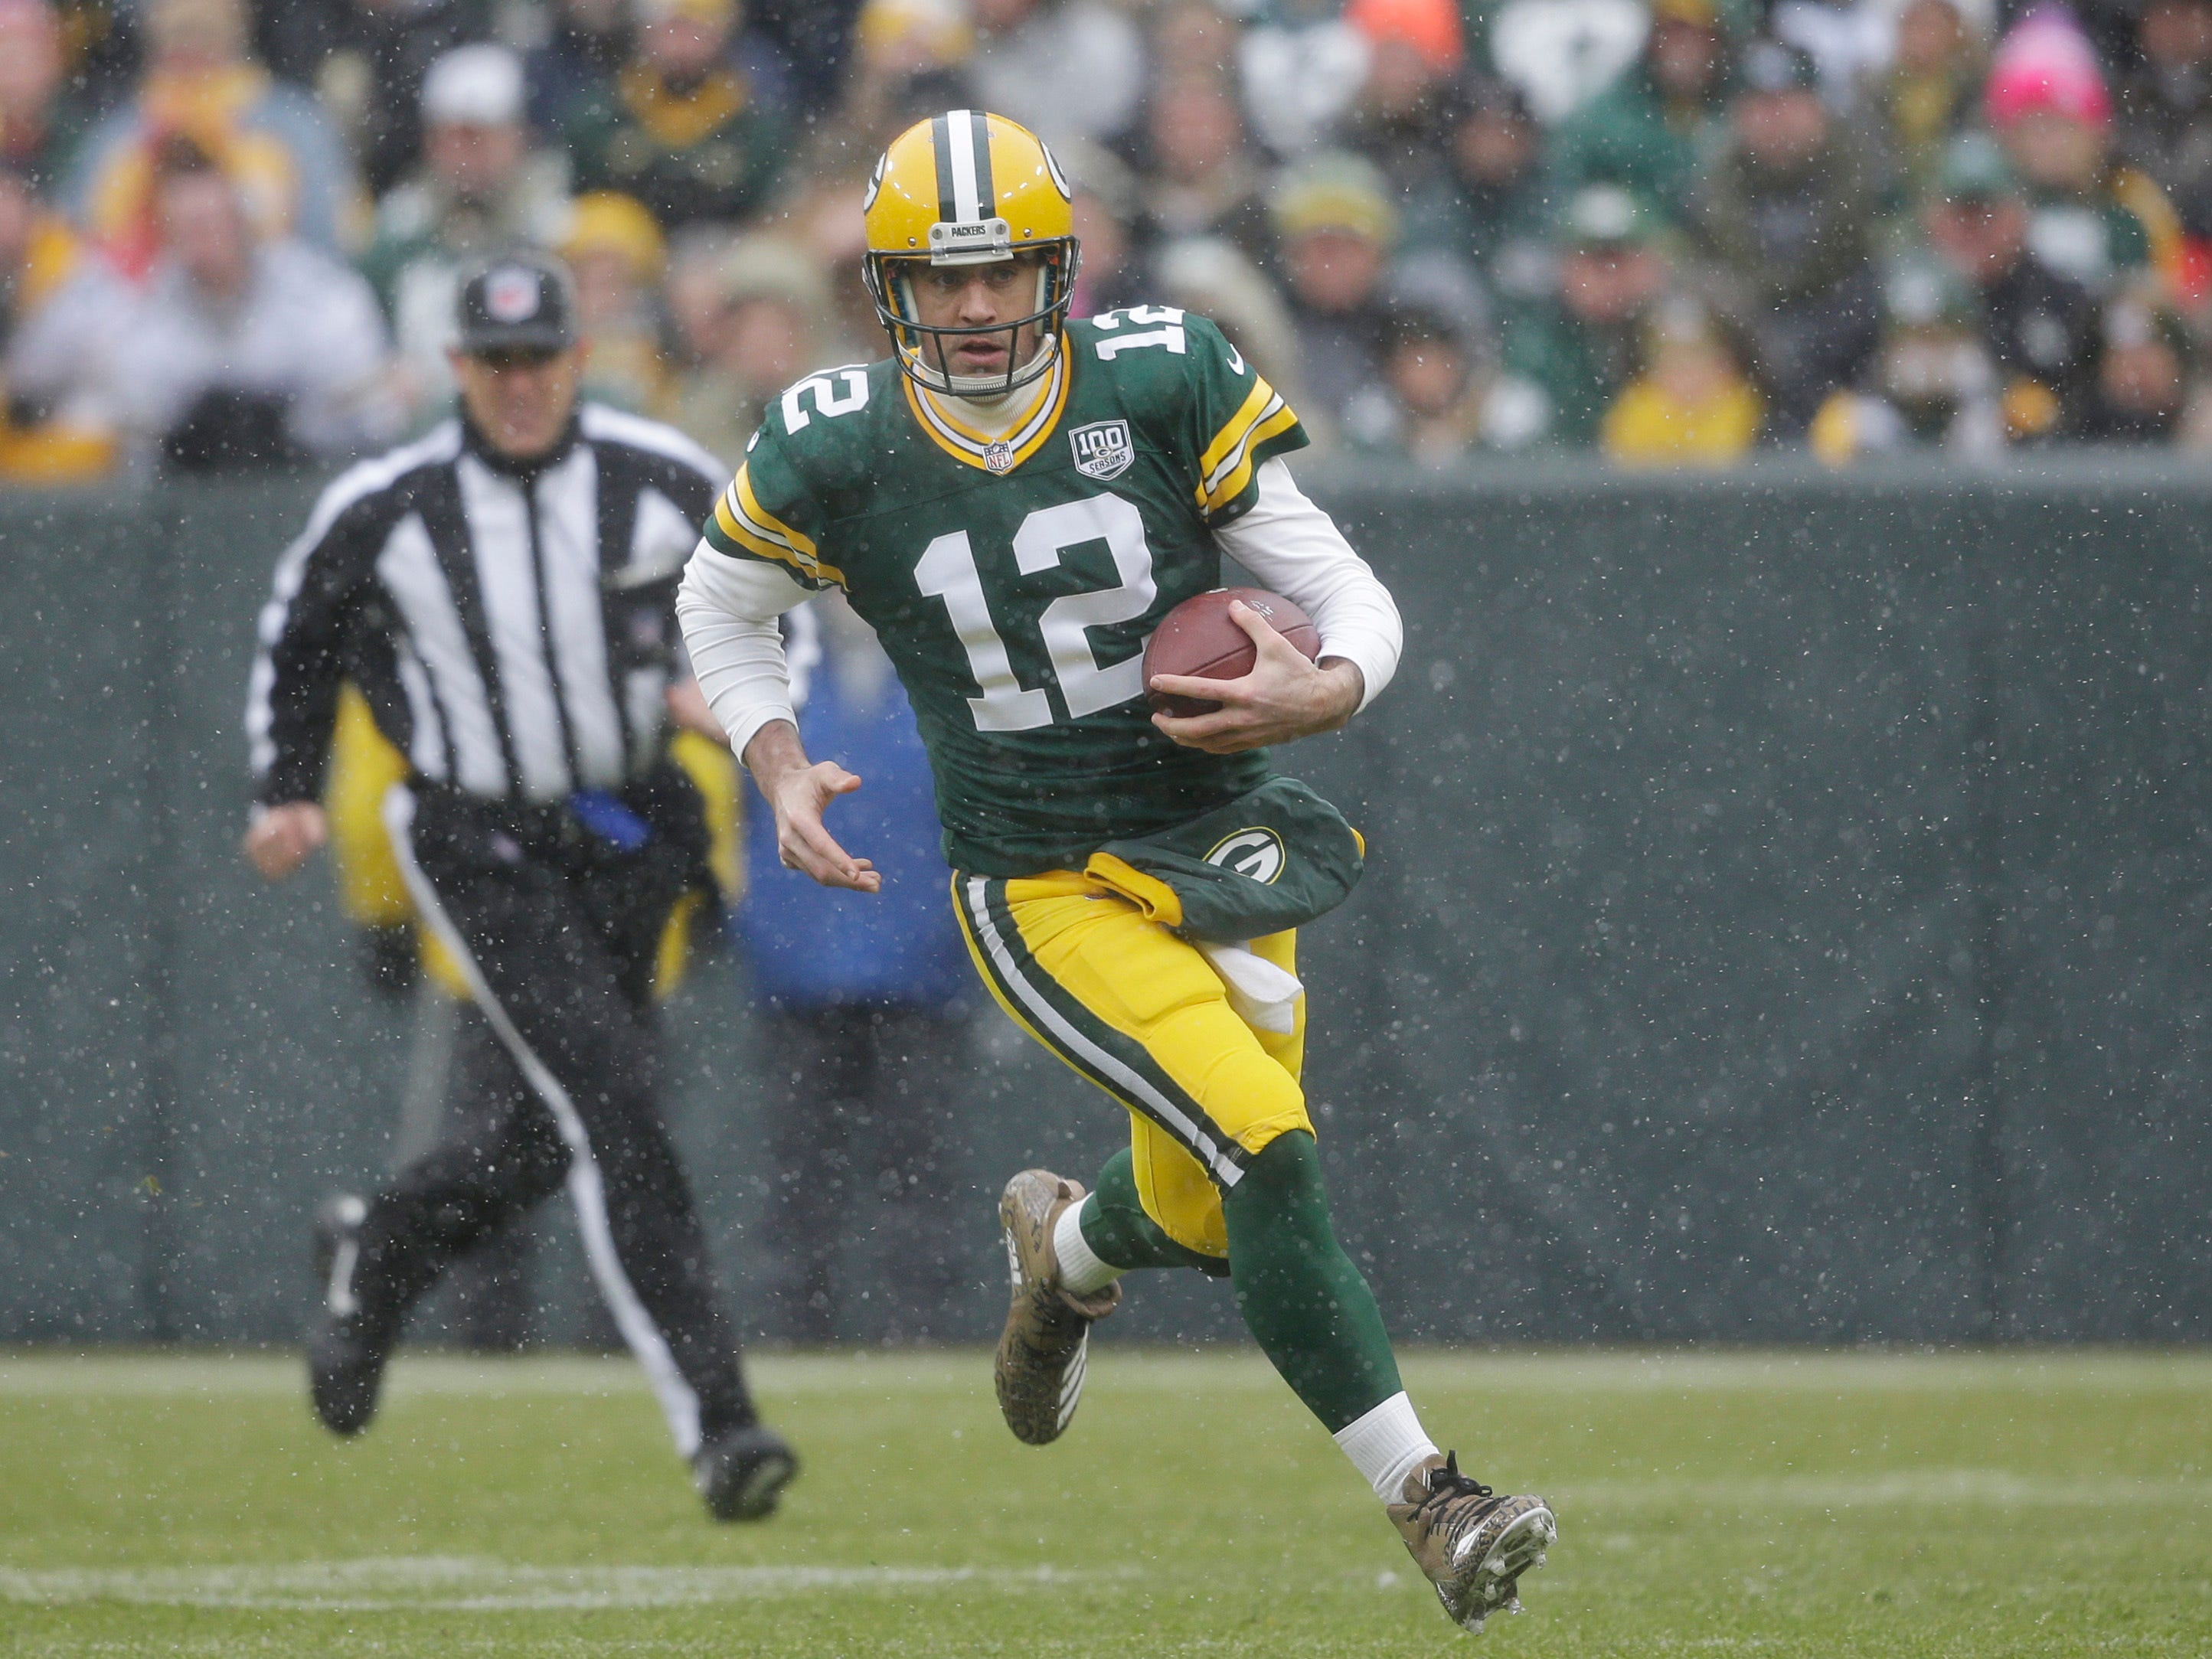 Green Bay Packers quarterback Aaron Rodgers rushes with the ball during the first half of an NFL football game against the Arizona Cardinals Sunday, Dec. 2, 2018, in Green Bay, Wis. (AP Photo/Jeffrey Phelps)